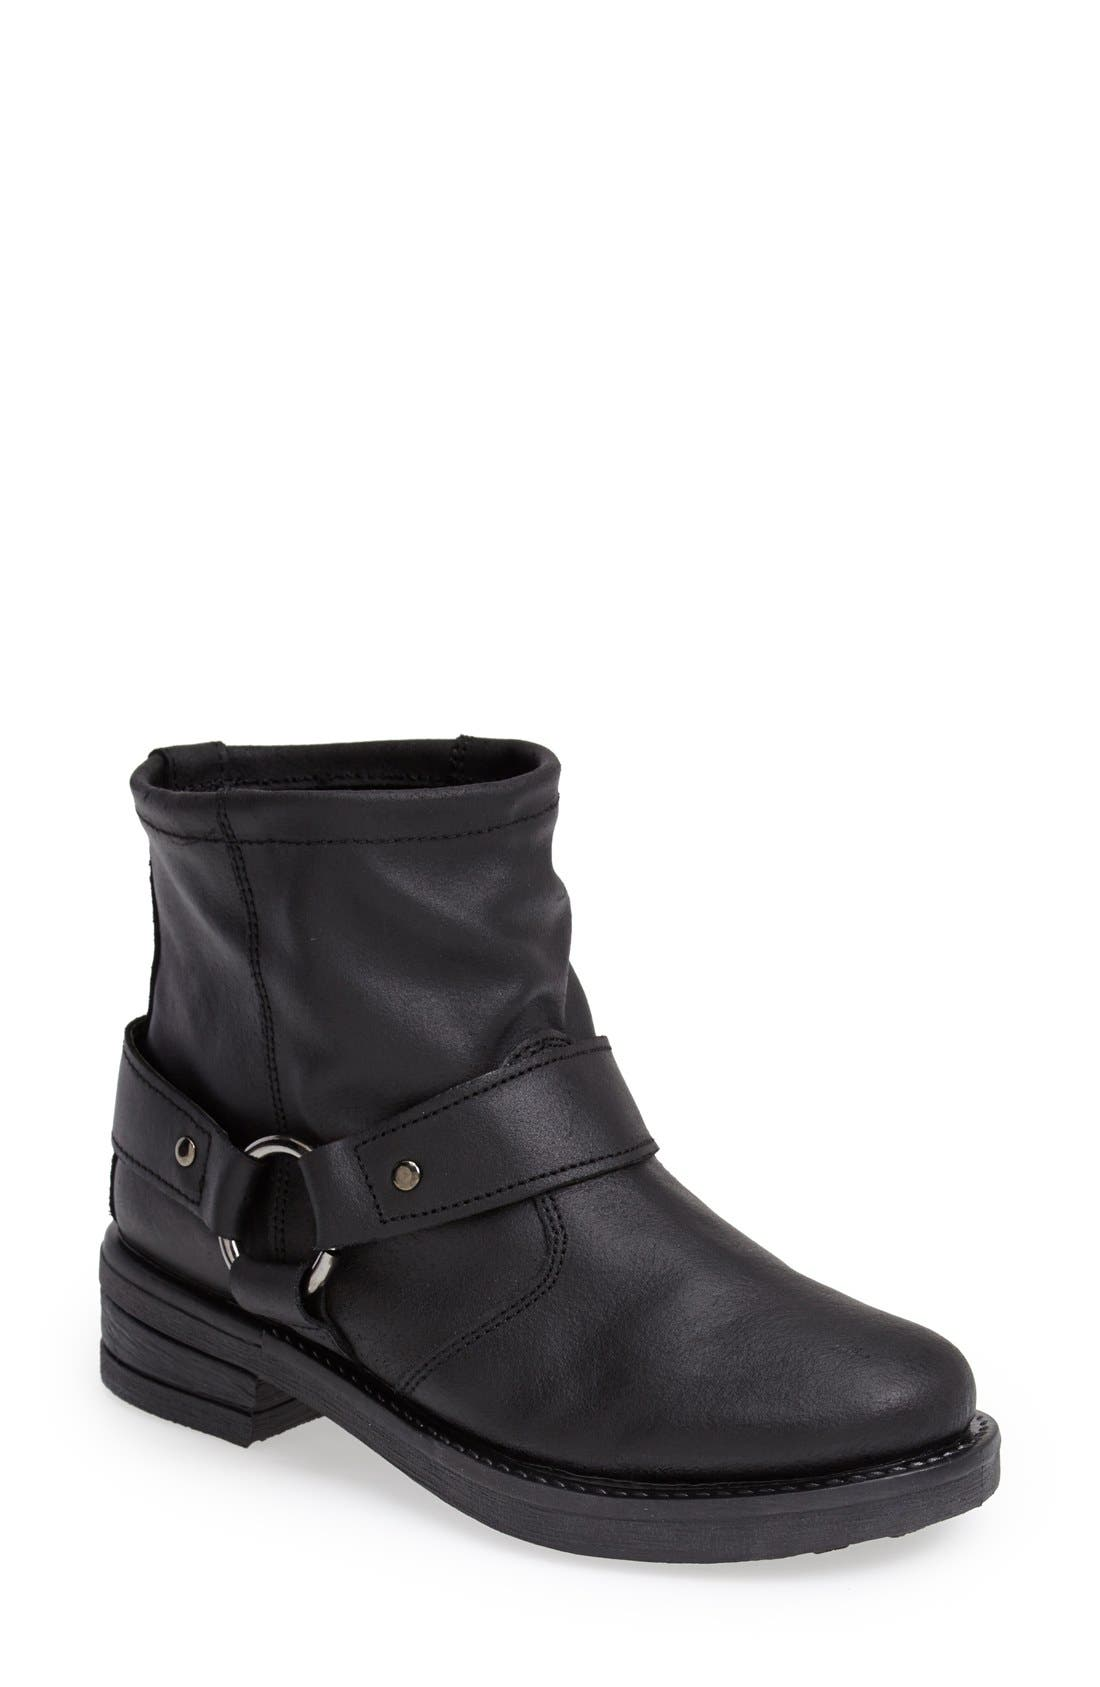 Alternate Image 1 Selected - Topshop 'Buster' Leather Harness Biker Boot (Women)